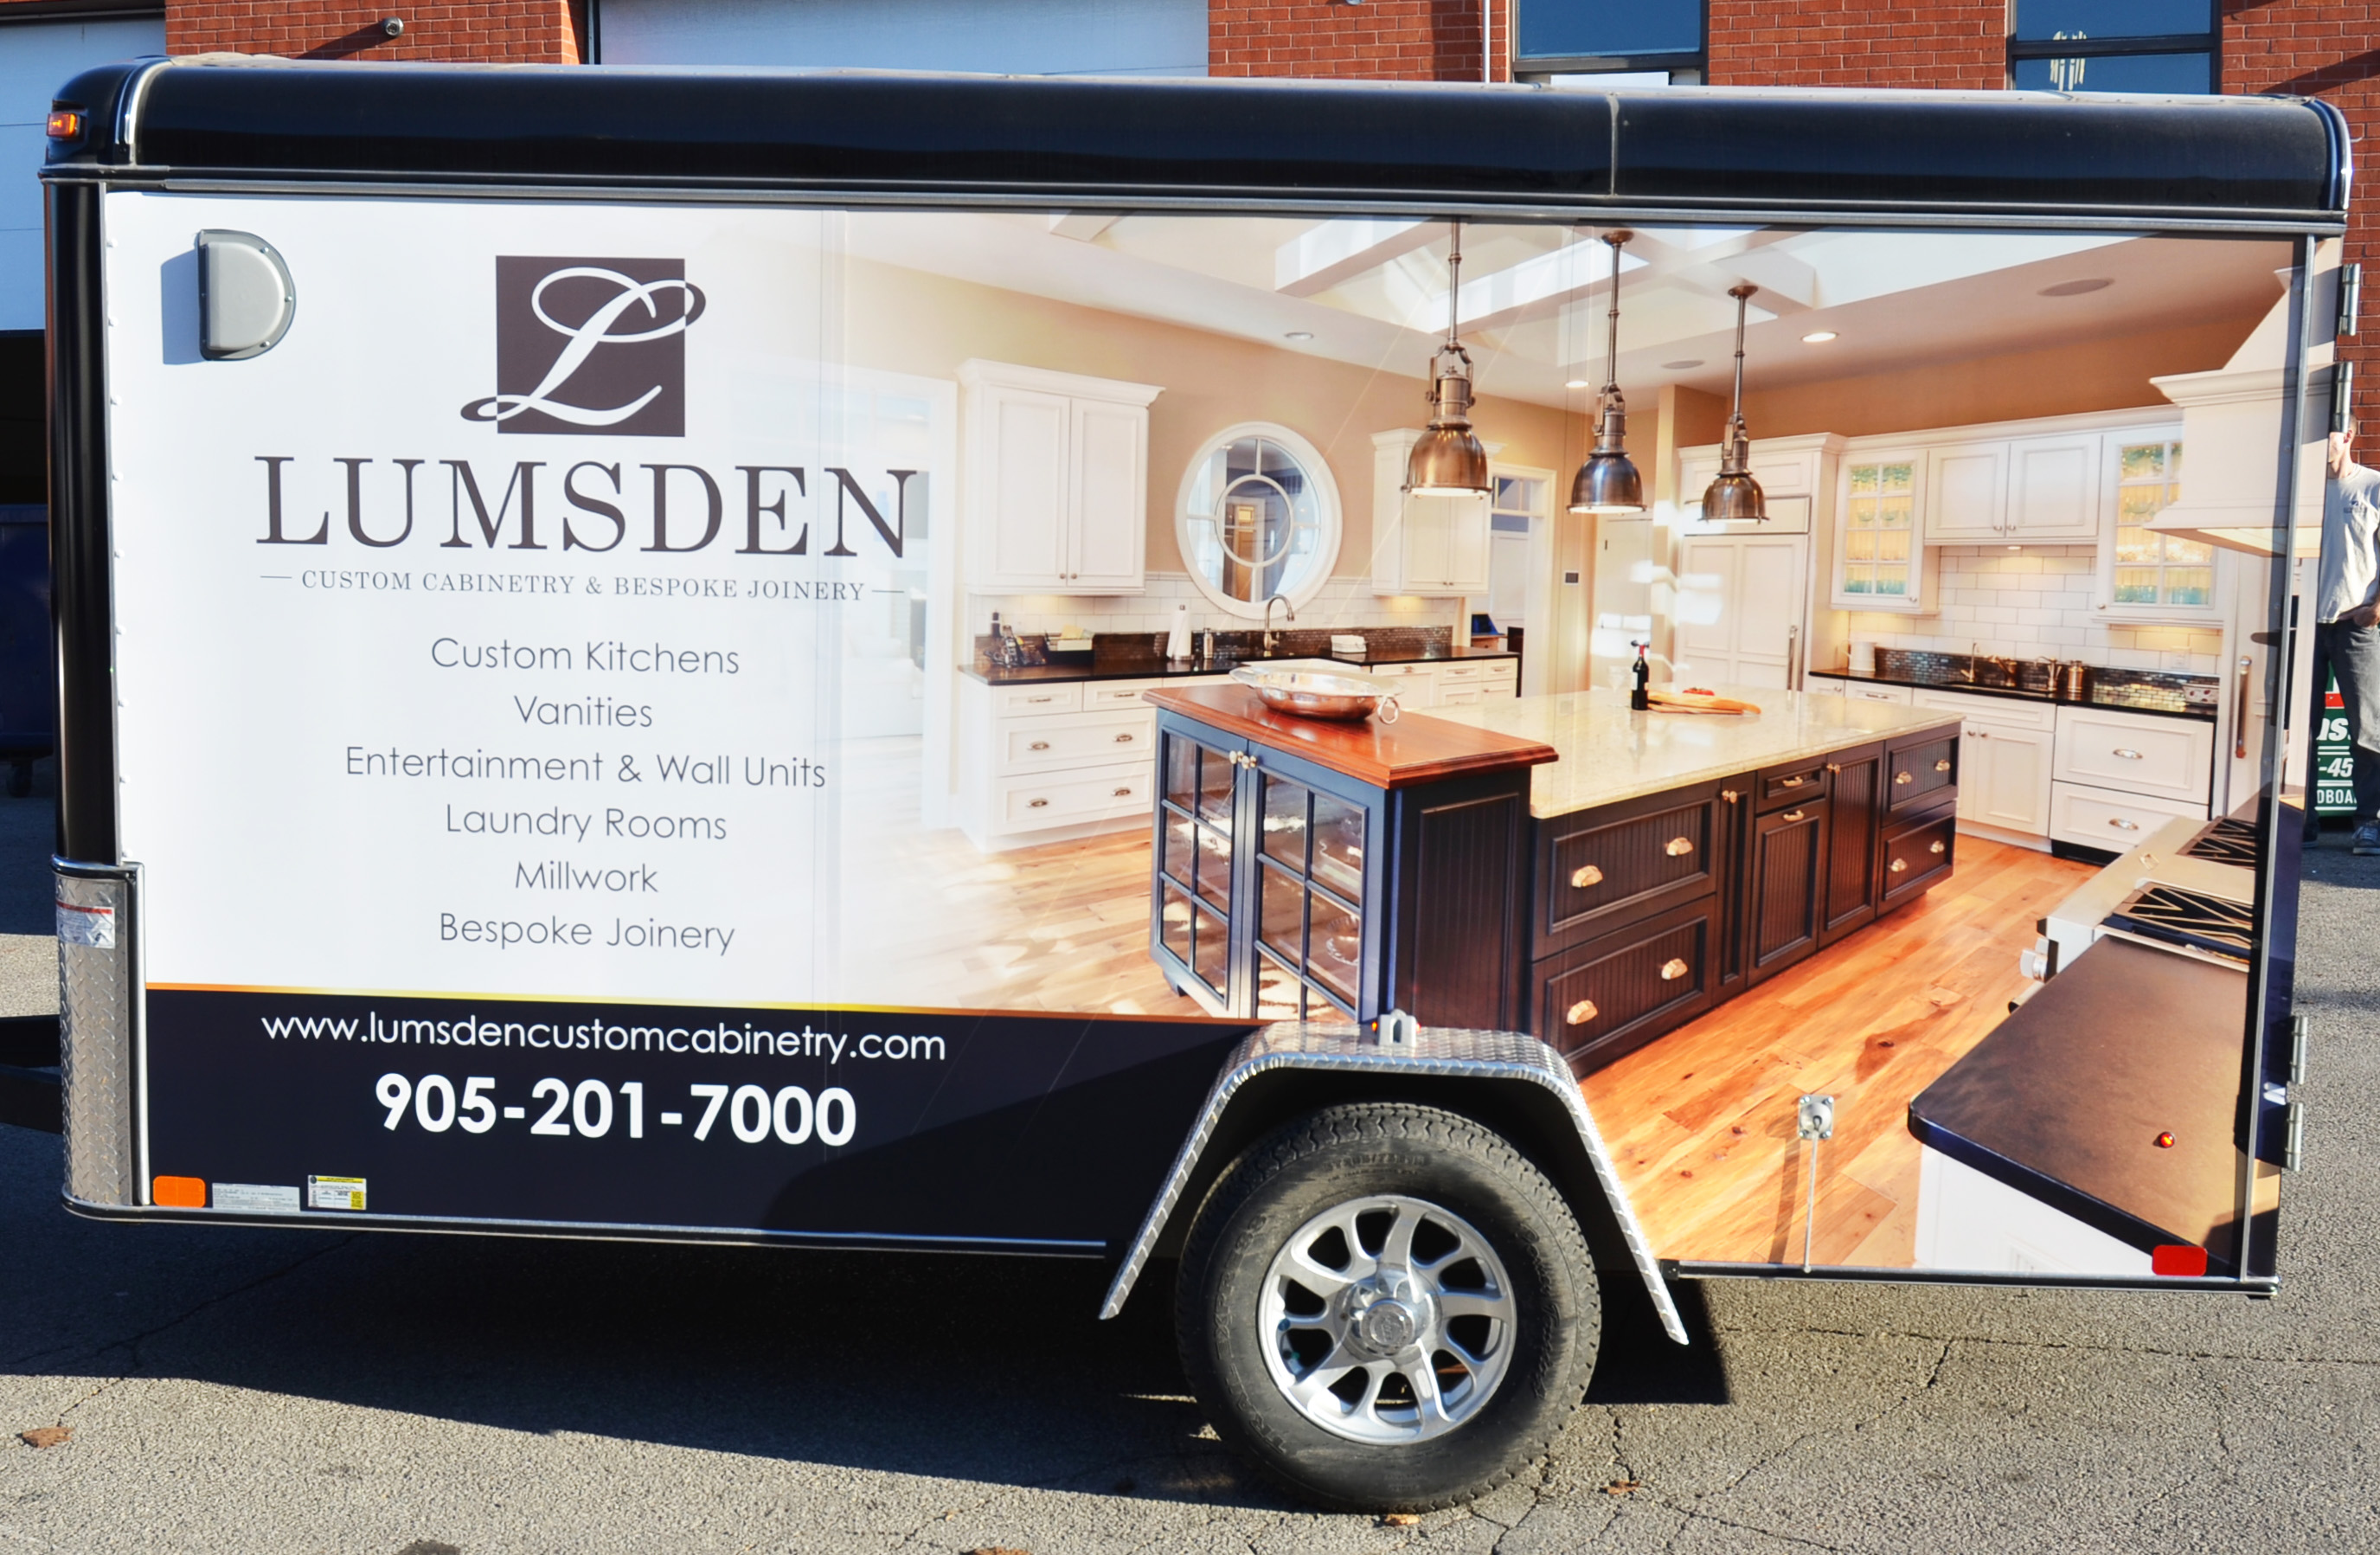 5 benefits of branding with business vehicle wraps identifyyourself lumsden utility trailer wrap by identify yourself solutioingenieria Choice Image